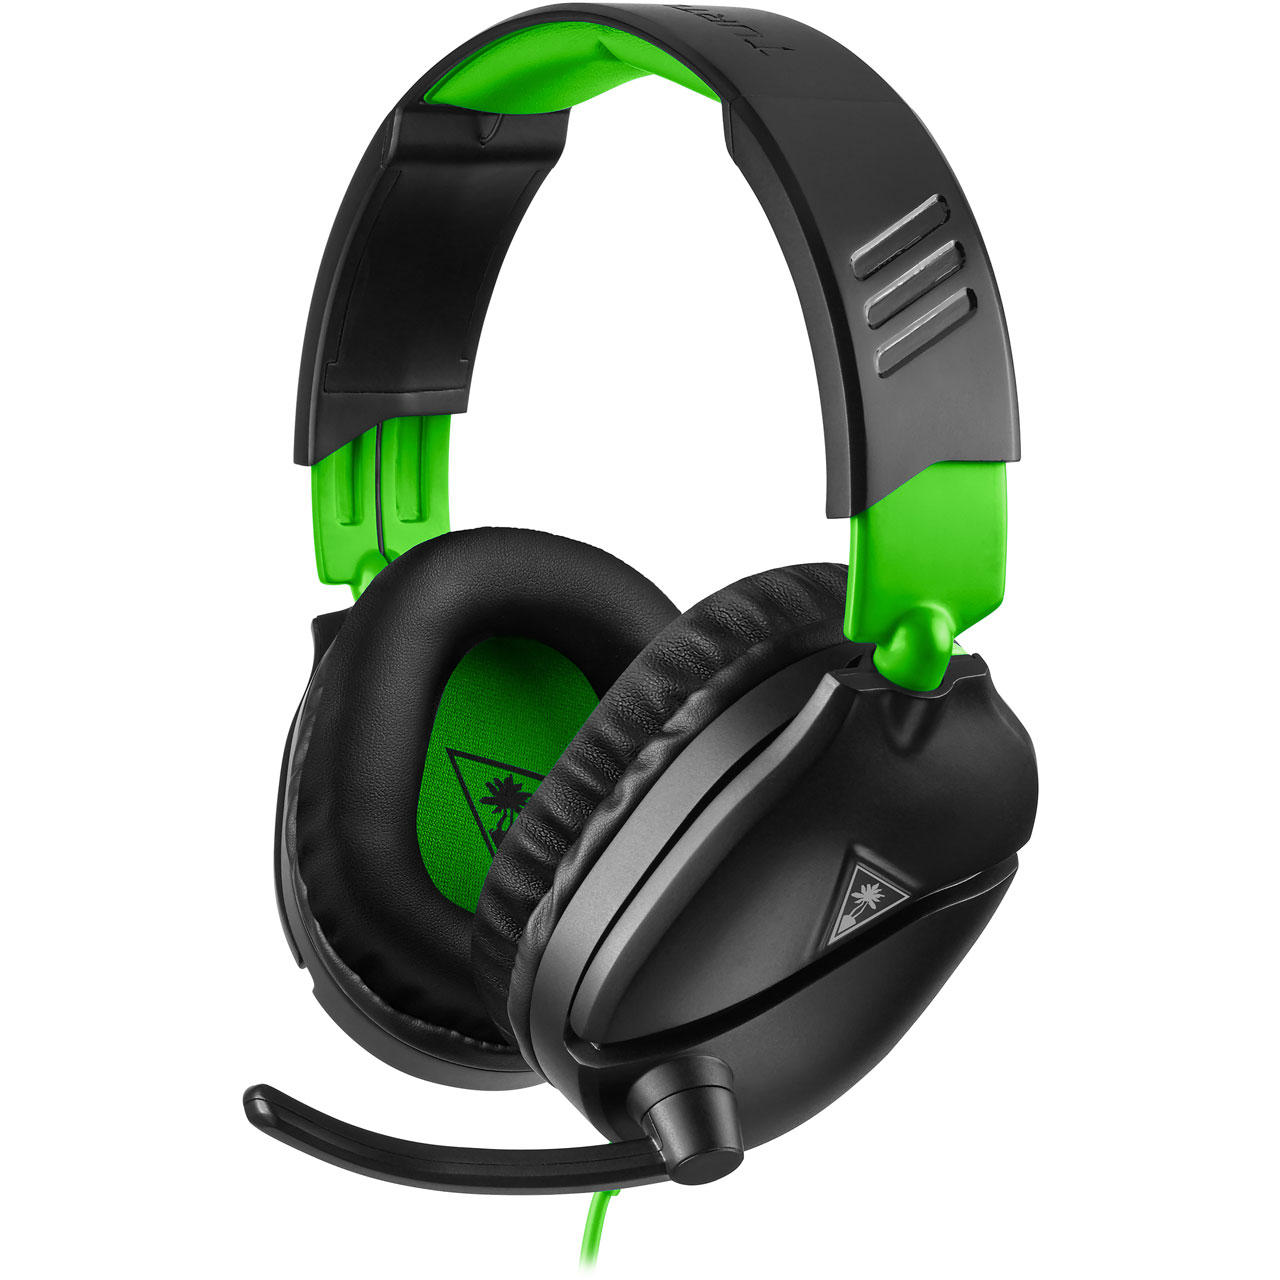 Turtle Beach Recon 70X Gaming Headset - Black / Green